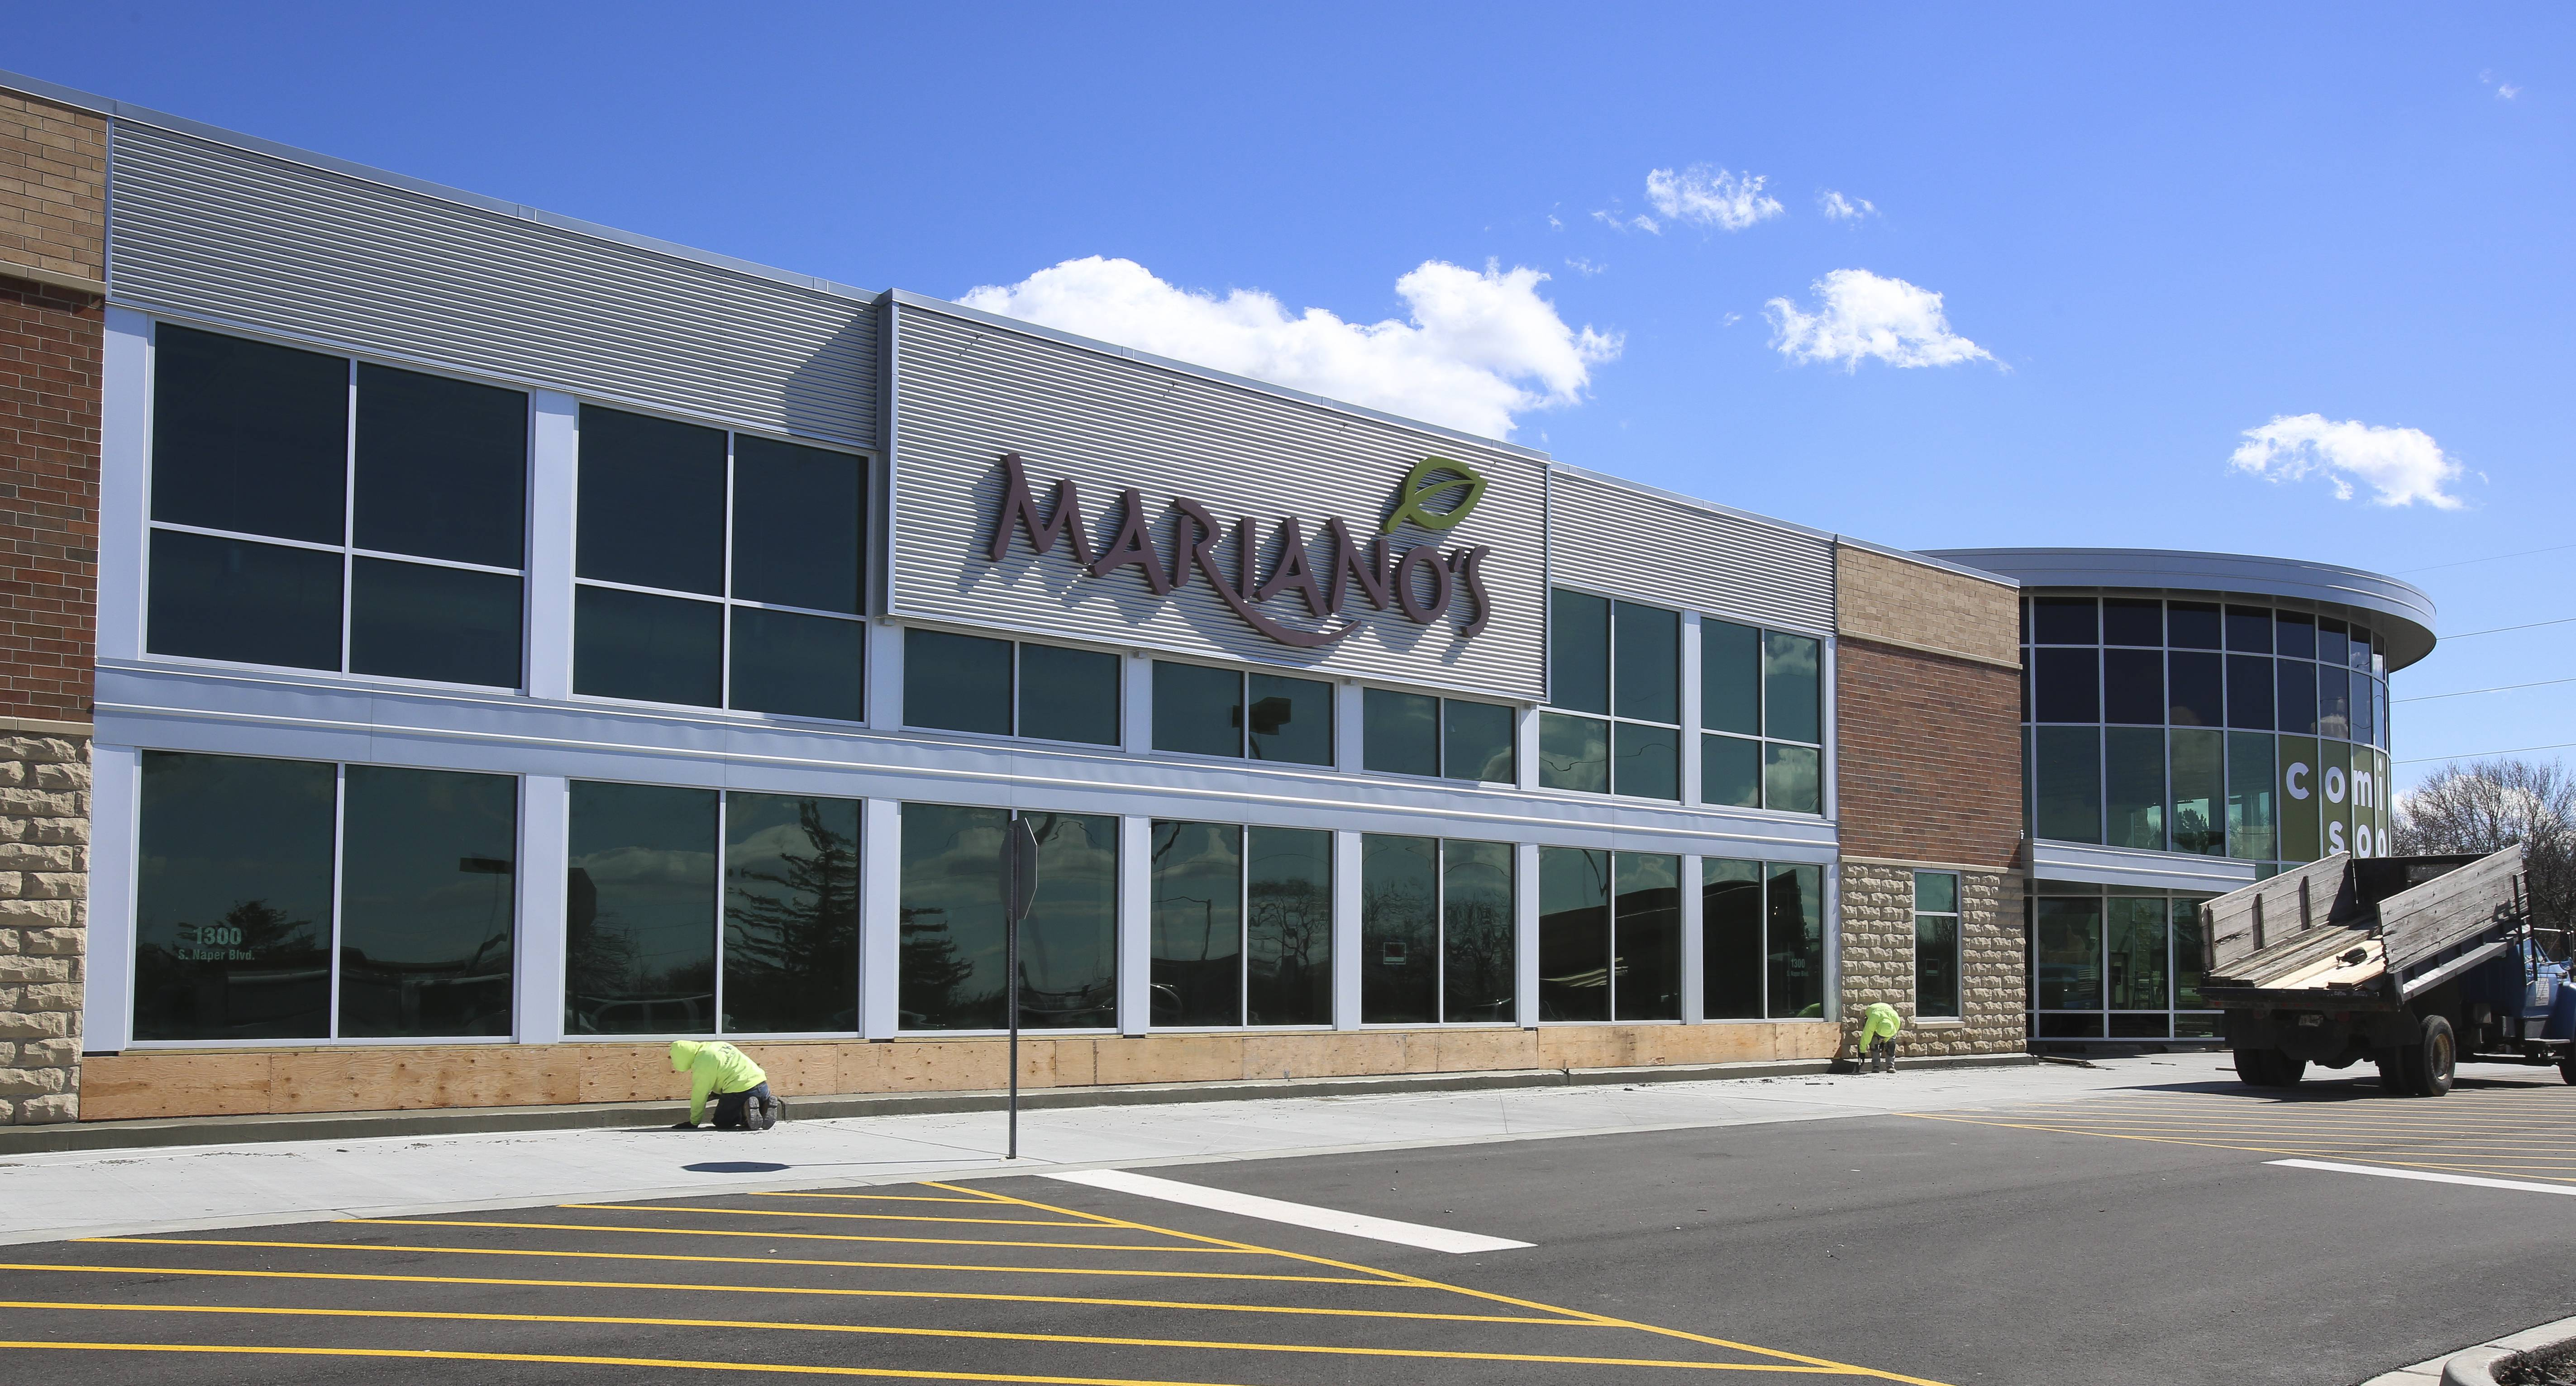 City council members in Naperville say it's time to find a complete solution to the noise neighbors are experiencing behind the new Mariano's at 1300 S. Naper Blvd.